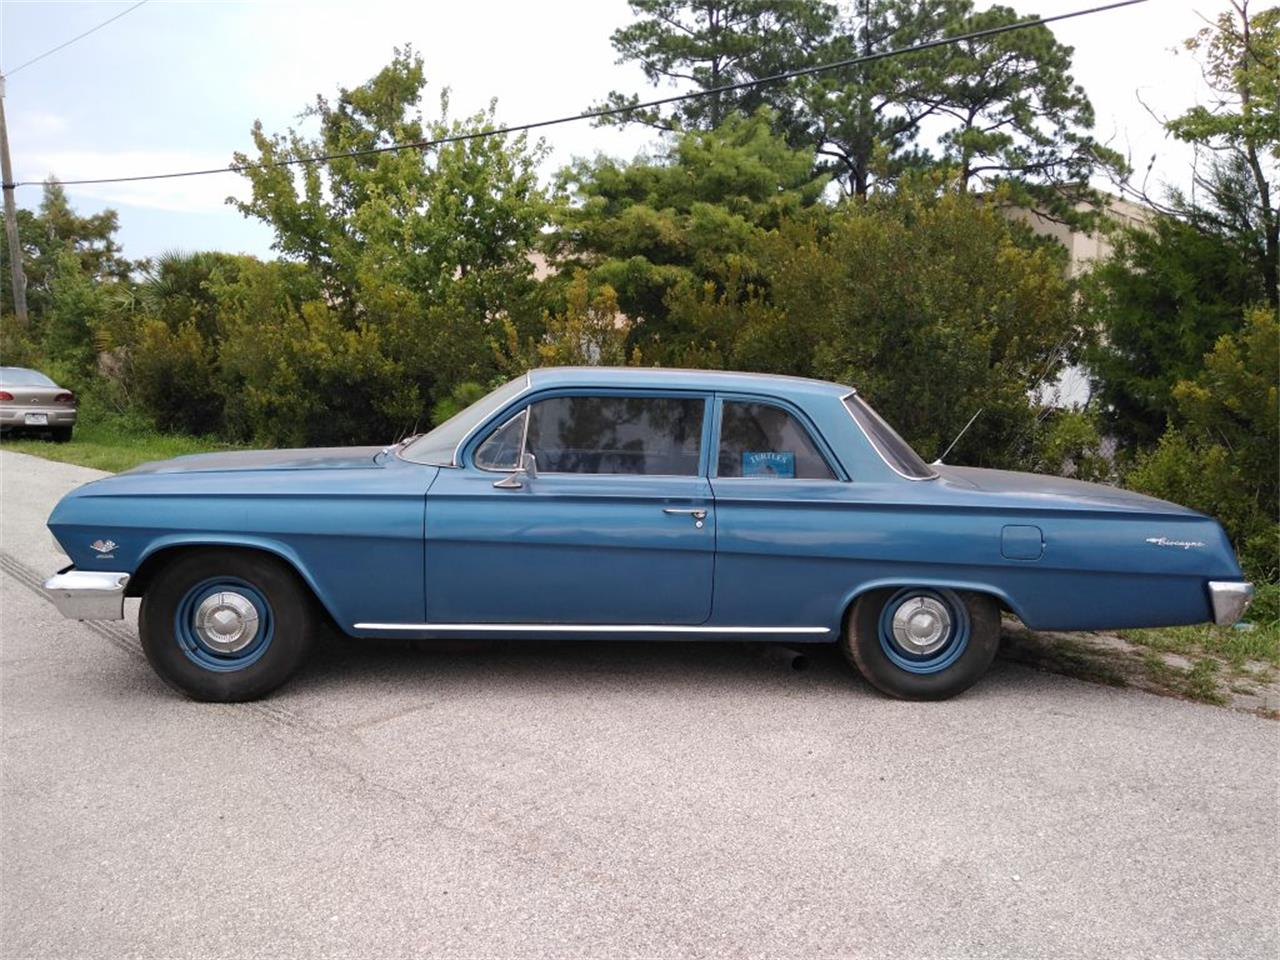 1962 Chevrolet Biscayne (CC-1249182) for sale in West Pittston, Pennsylvania